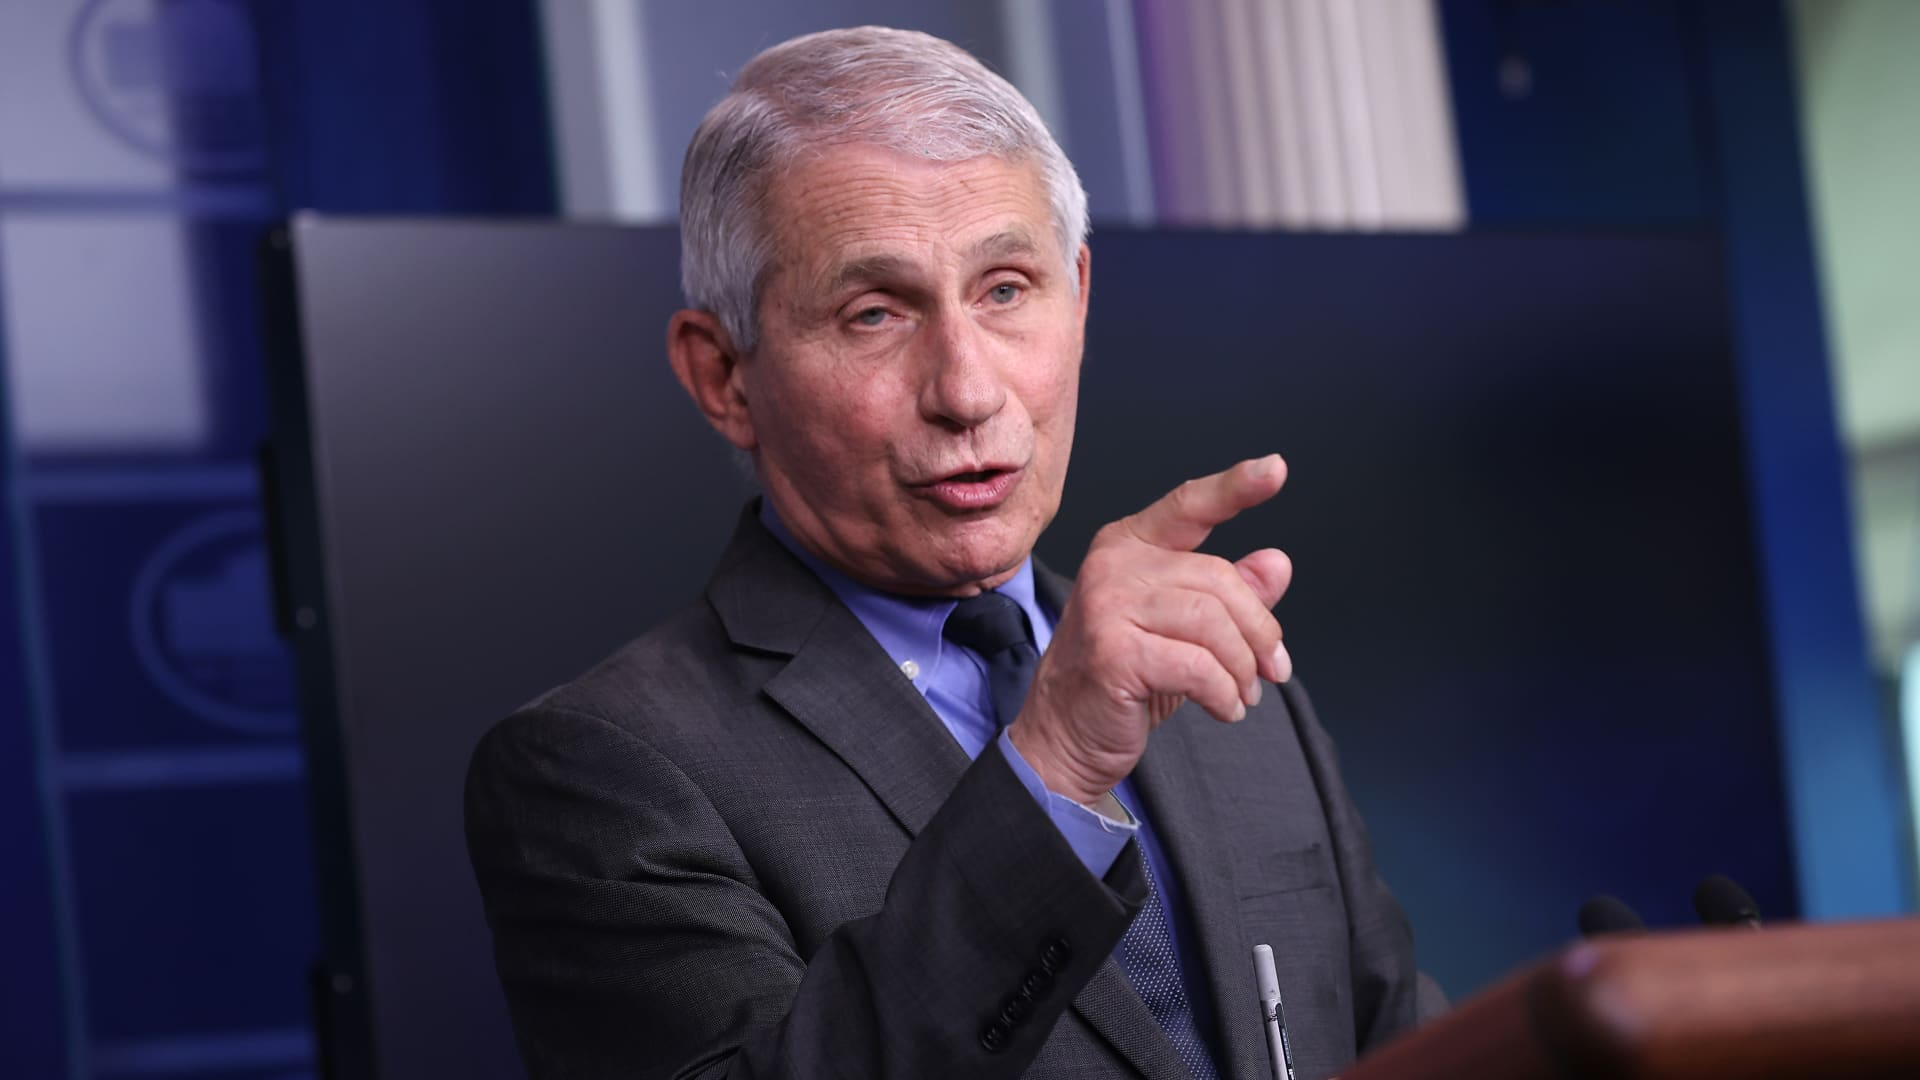 National Institute of Allergy and Infectious Diseases Director Dr. Anthony Fauci talks to reporters in the Brady Press Briefing Room at the White House on April 13, 2021 in Washington, DC.